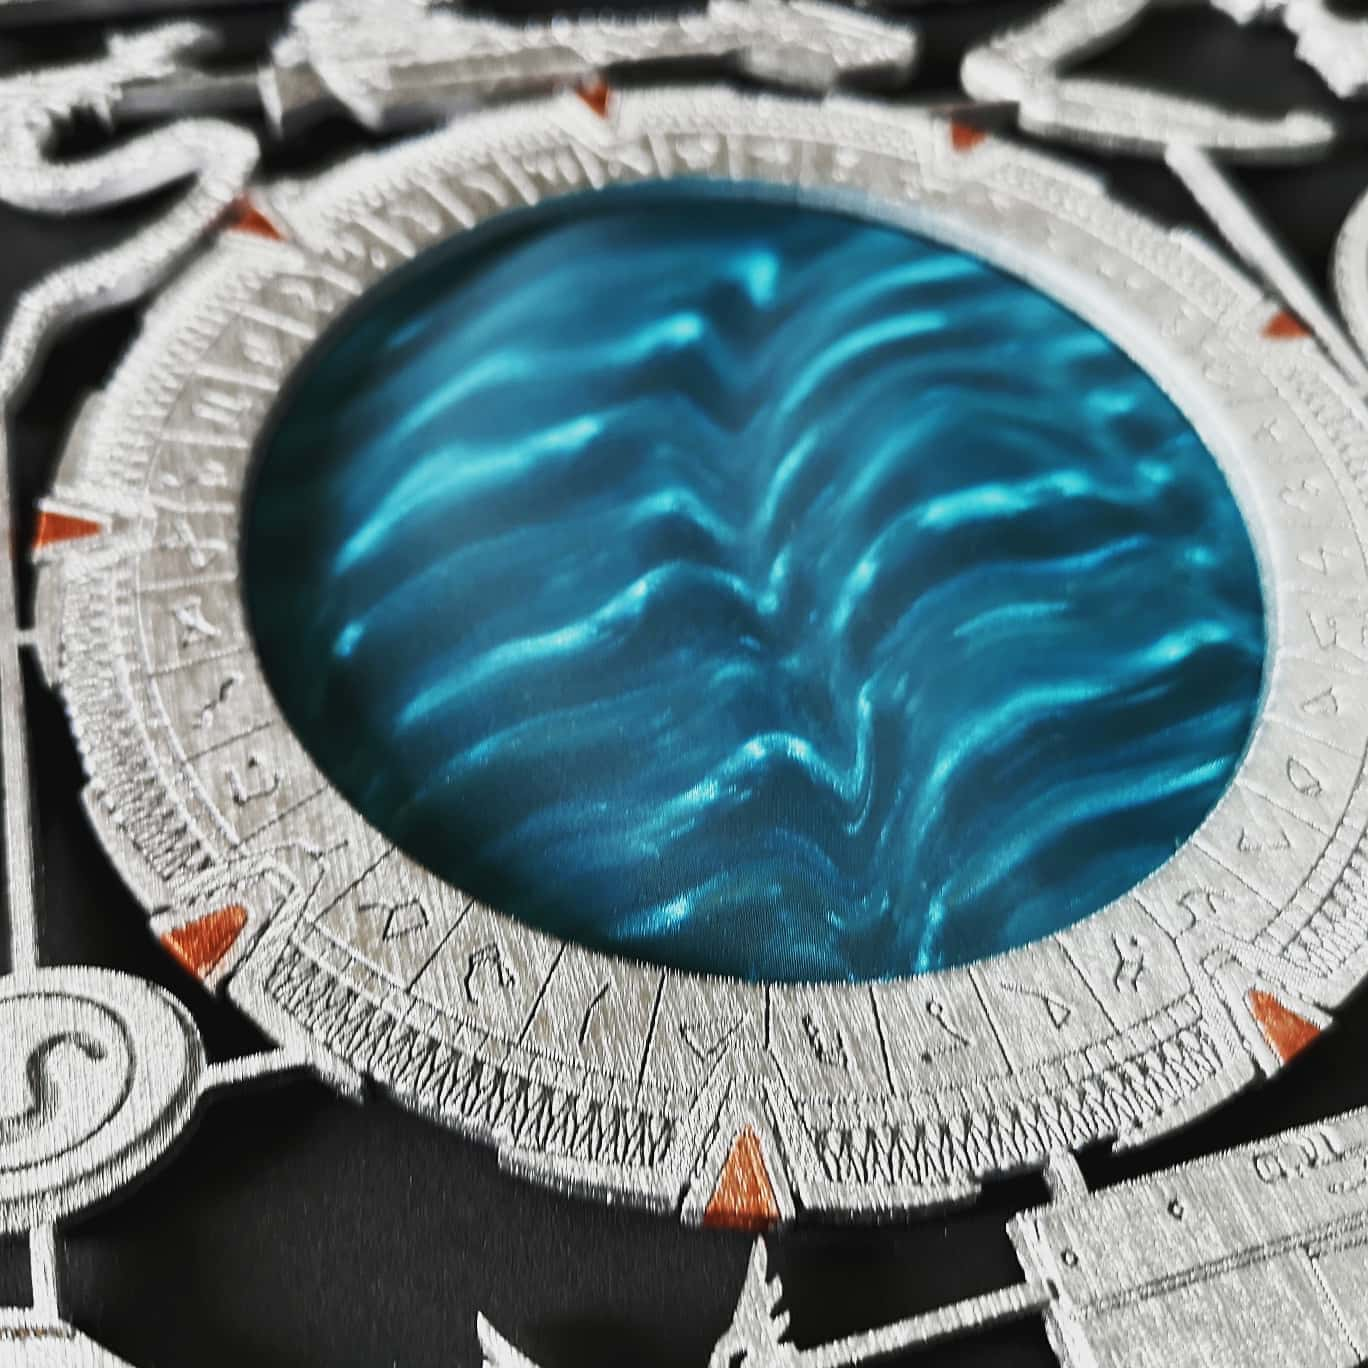 SG1 Stargate Model Kit Art